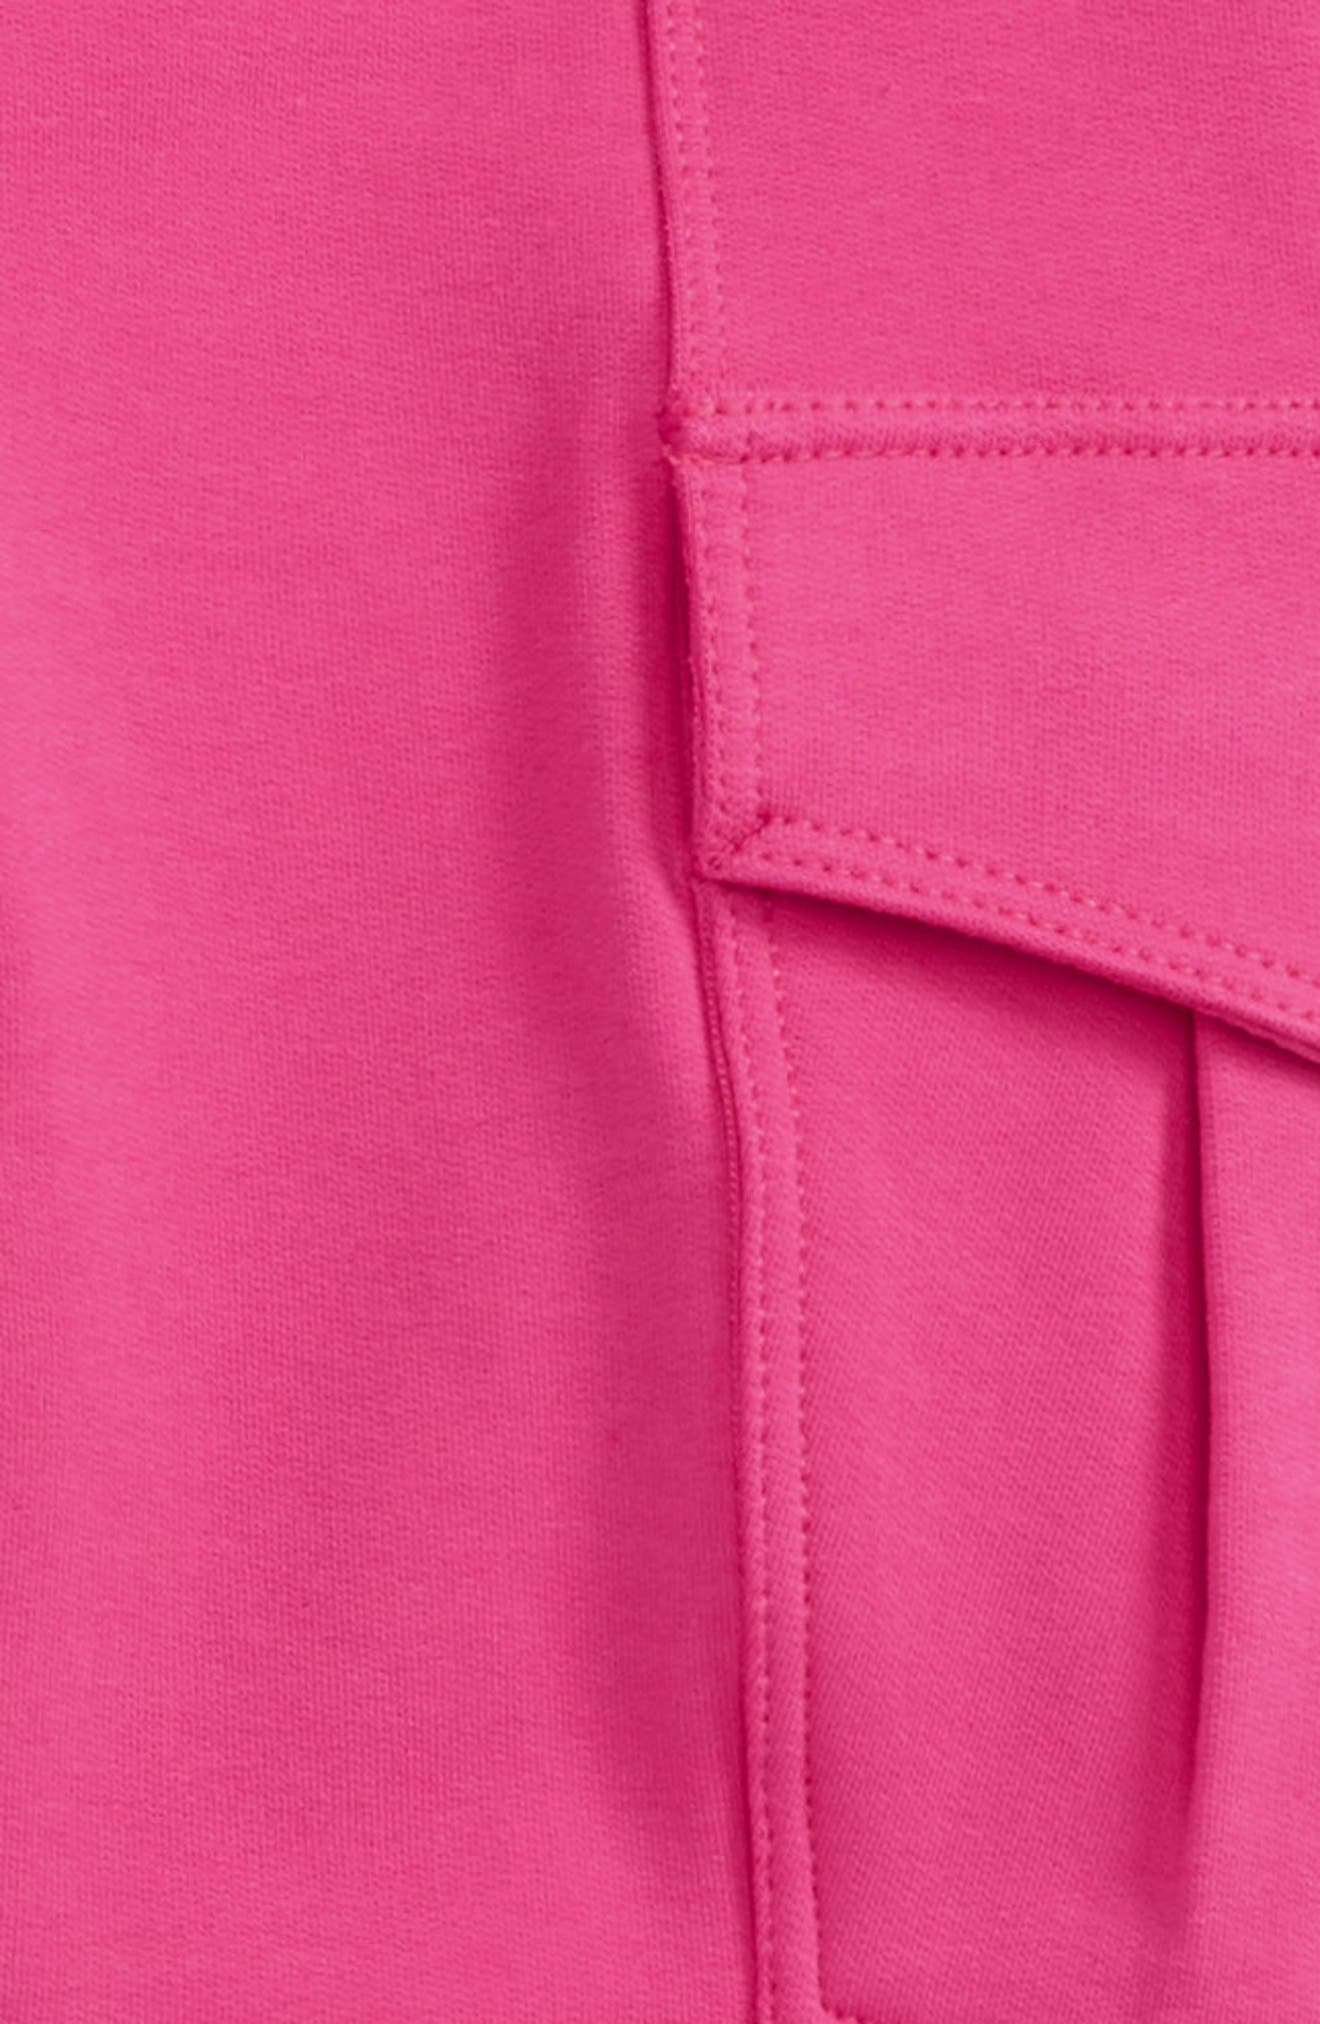 French Terry Cargo Pants,                             Alternate thumbnail 2, color,                             650